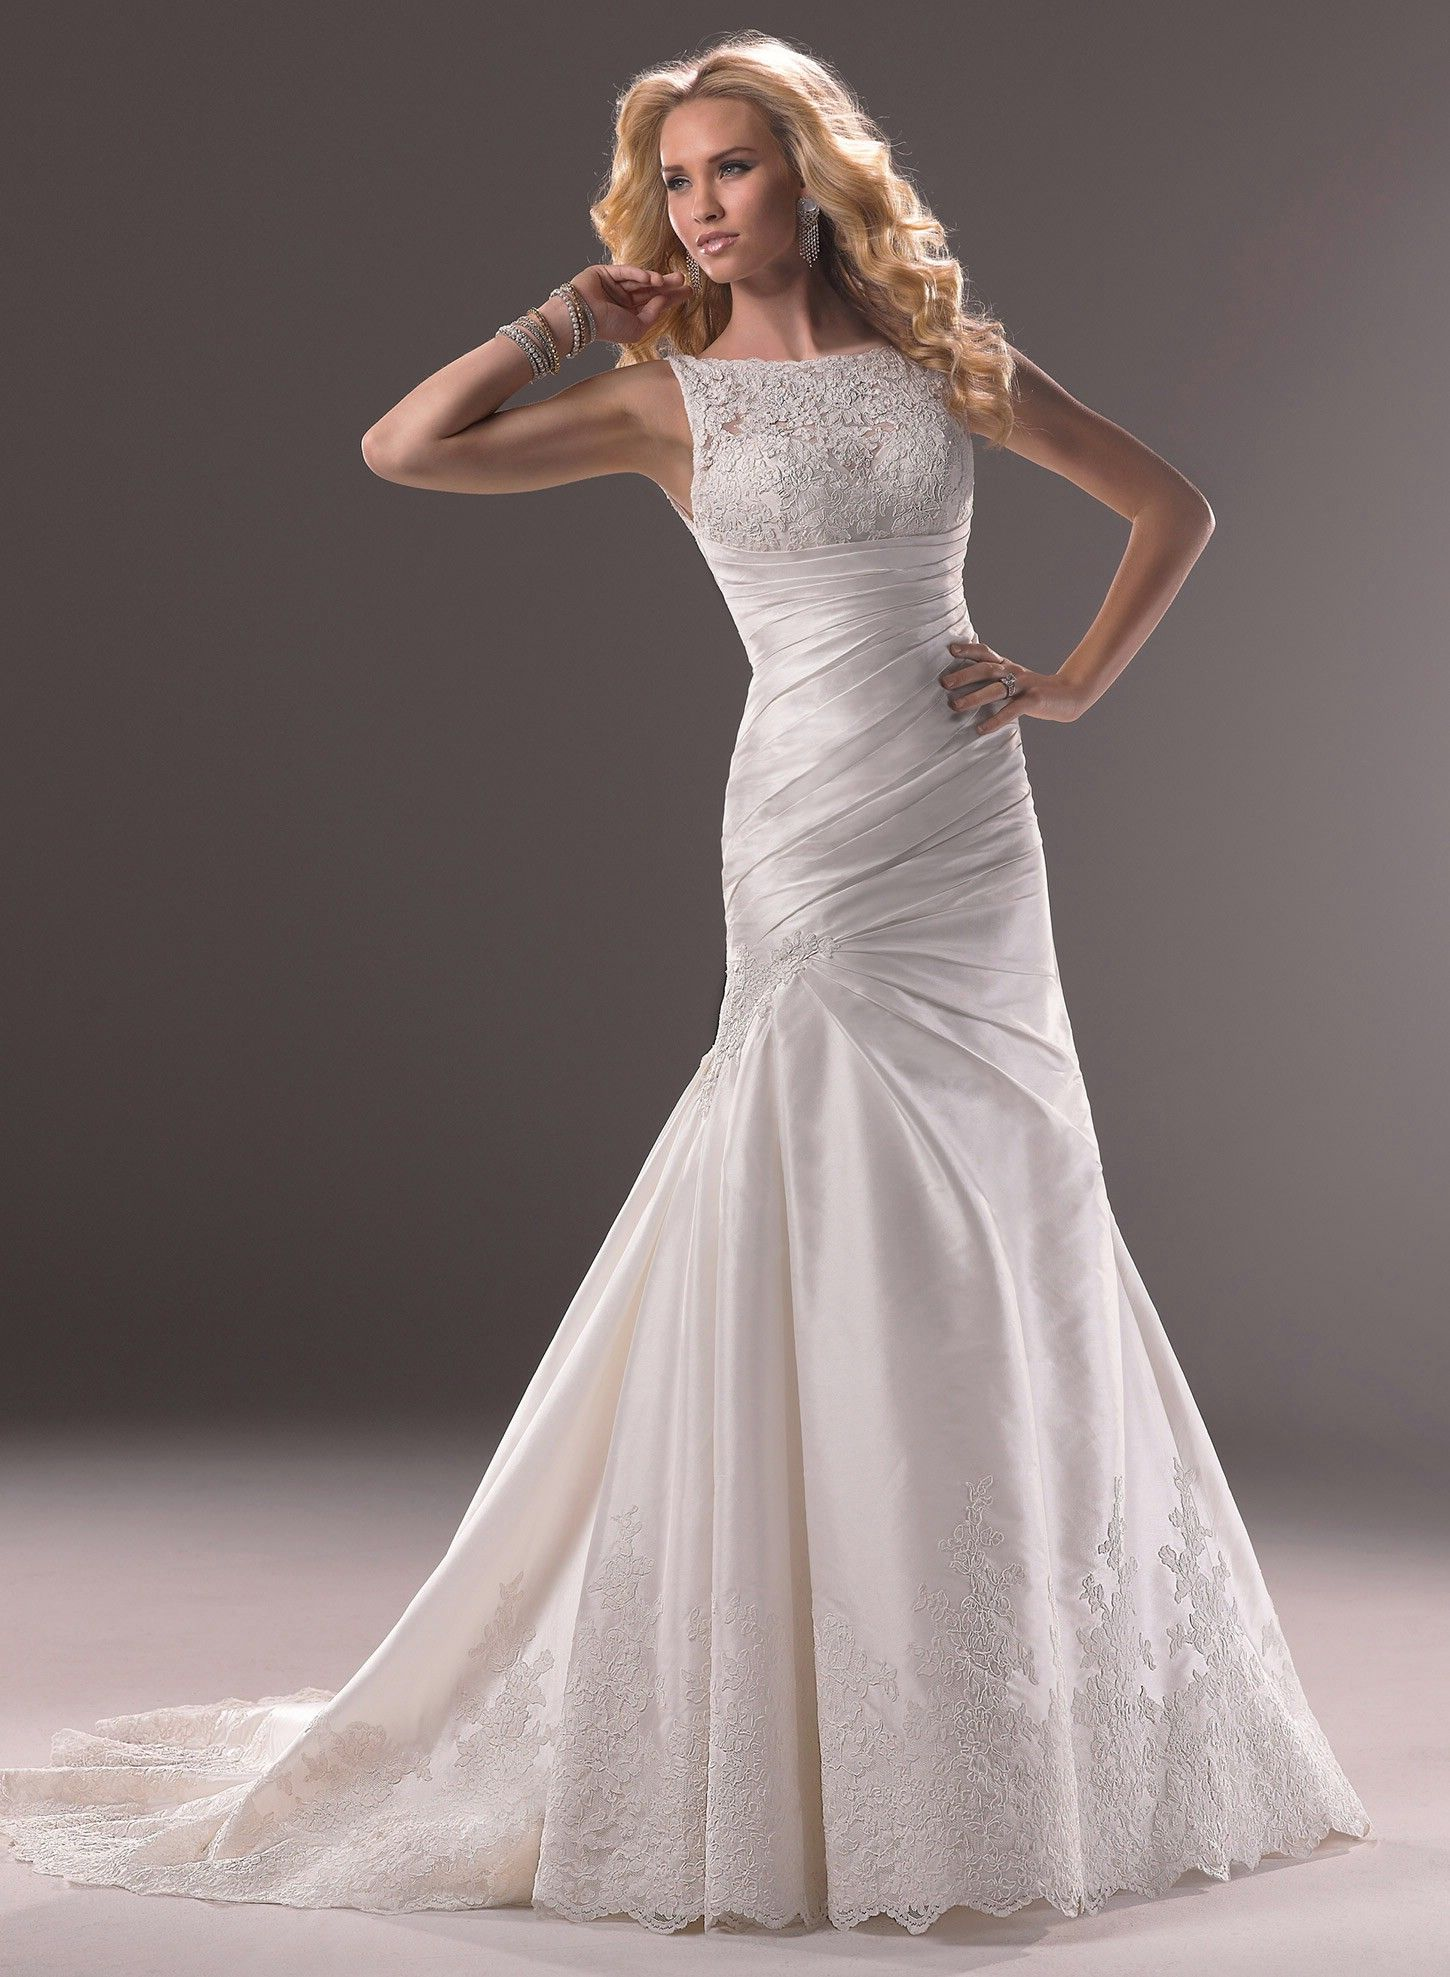 Finding The Perfect Best Wedding Dress For Small Bust Is Something That Every Prospective Bride Concerned With